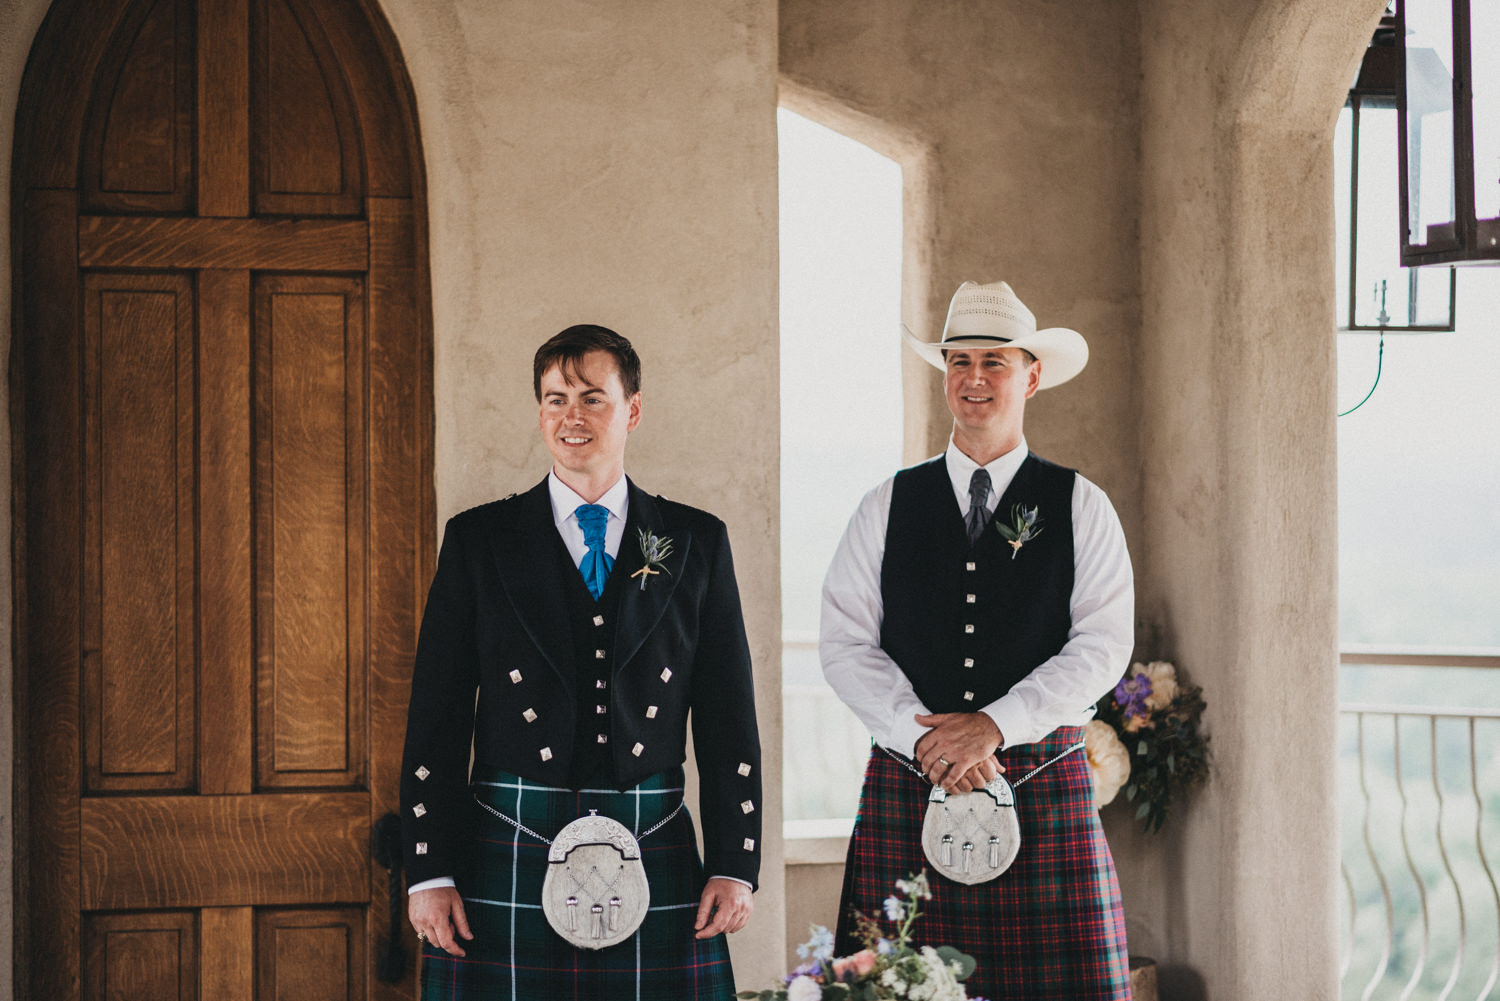 Groom and Best Man in Kilts